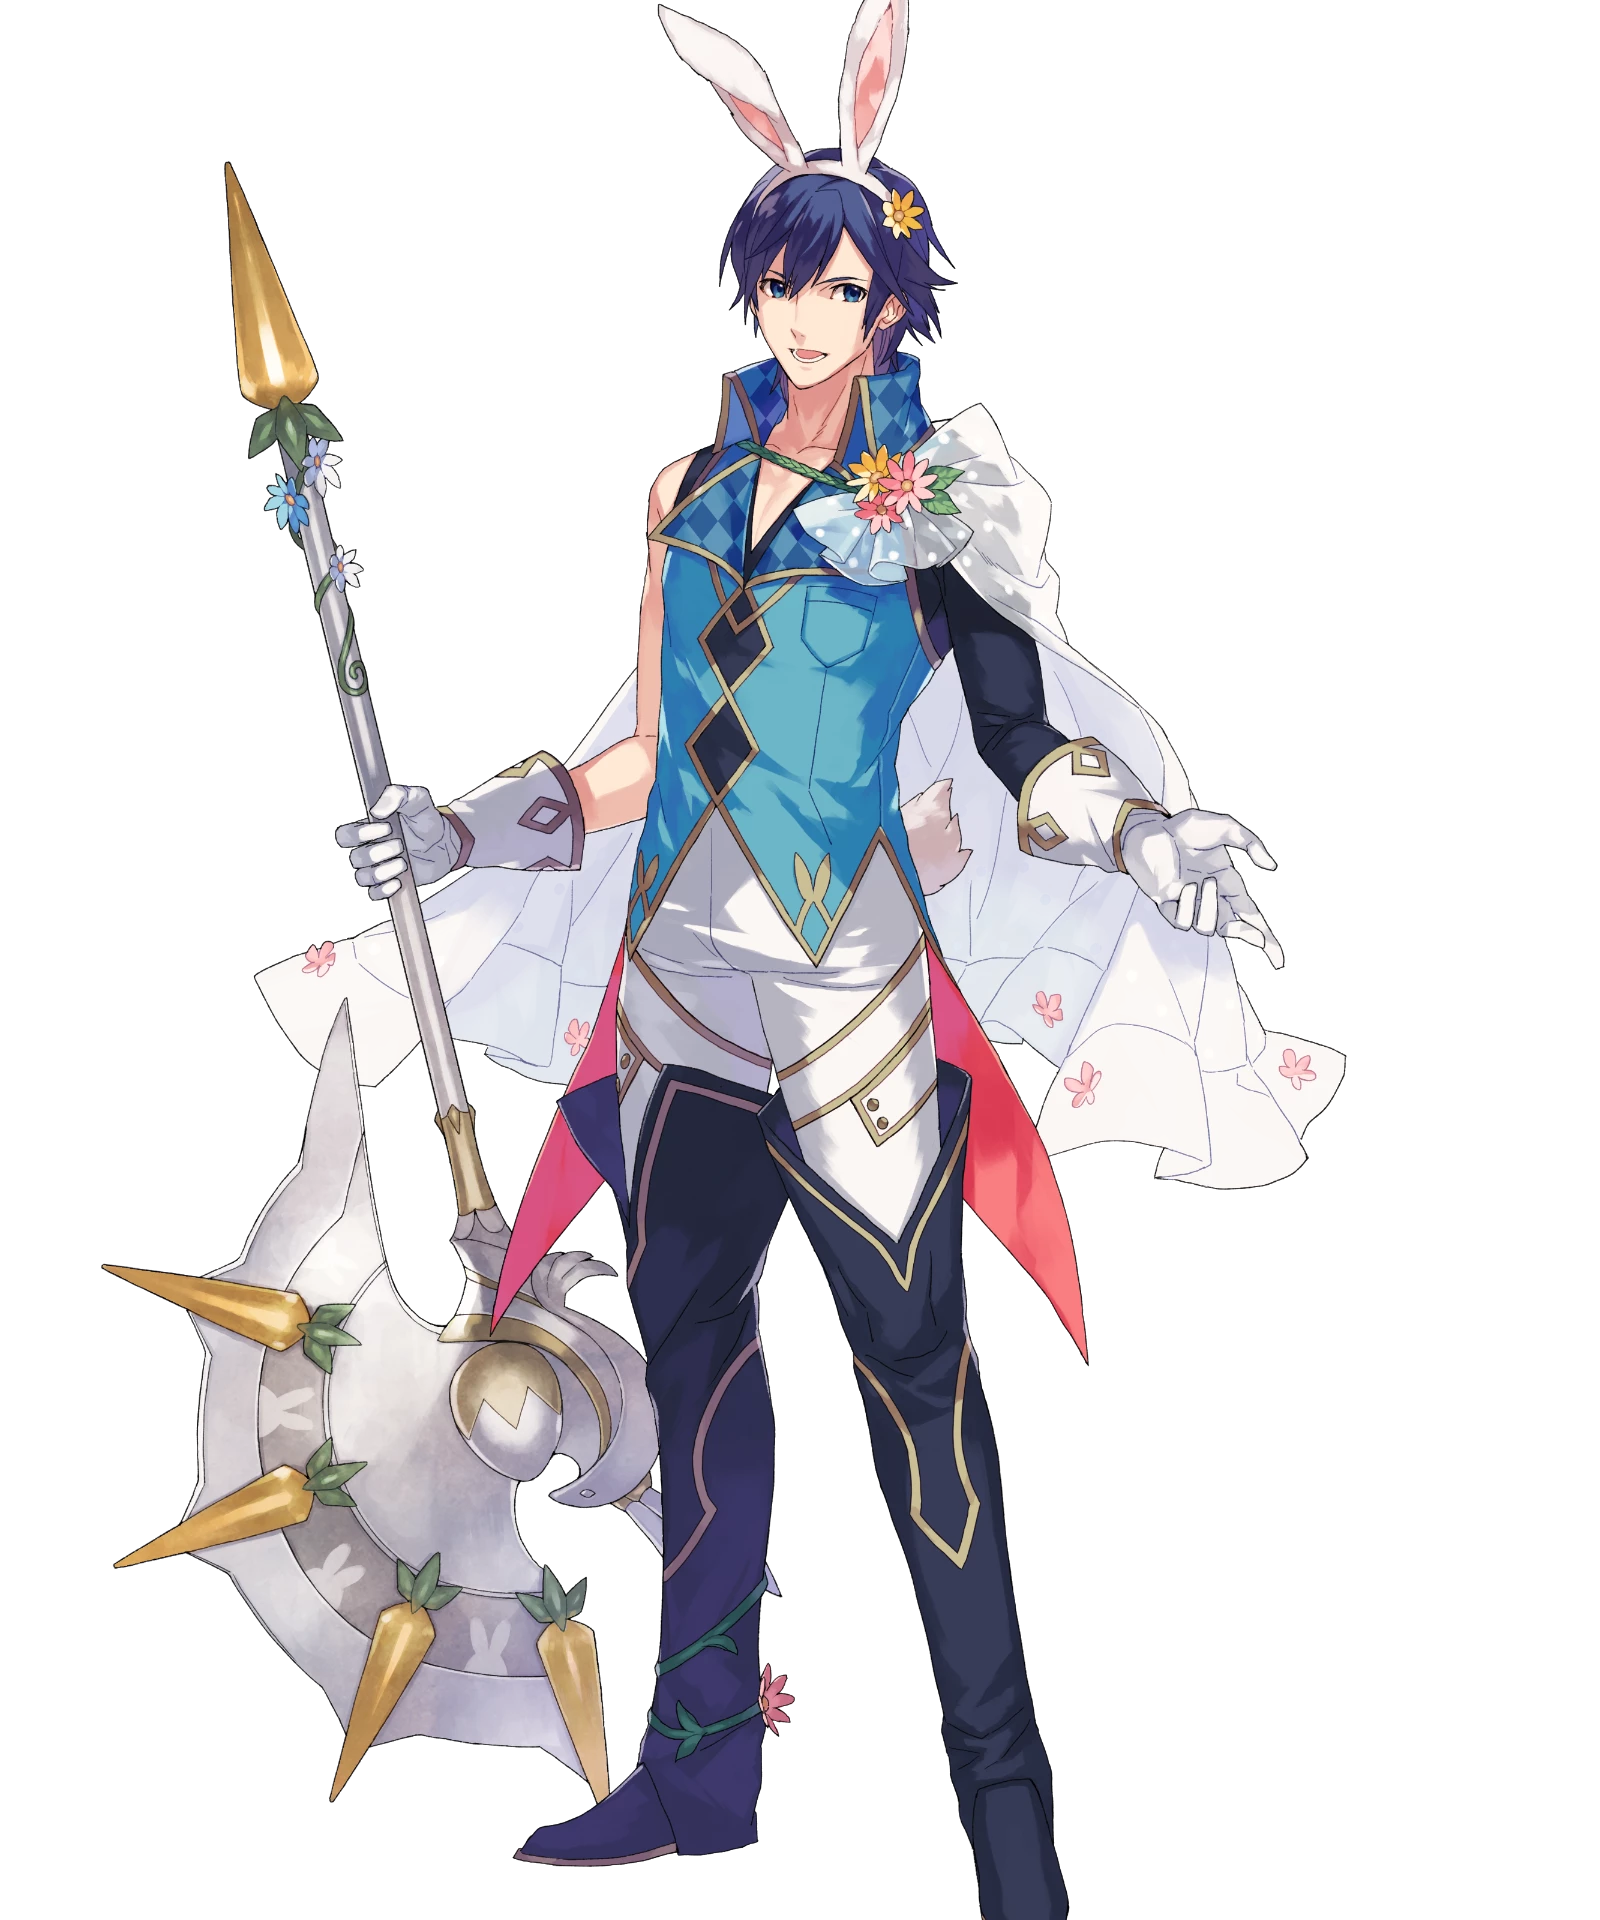 Full Portrait Chrom Spring Festival Png Png Image 1600 1920 Pixels Scaled 48 Fire Emblem Characters Fire Emblem Heroes Fire Emblem Chrom